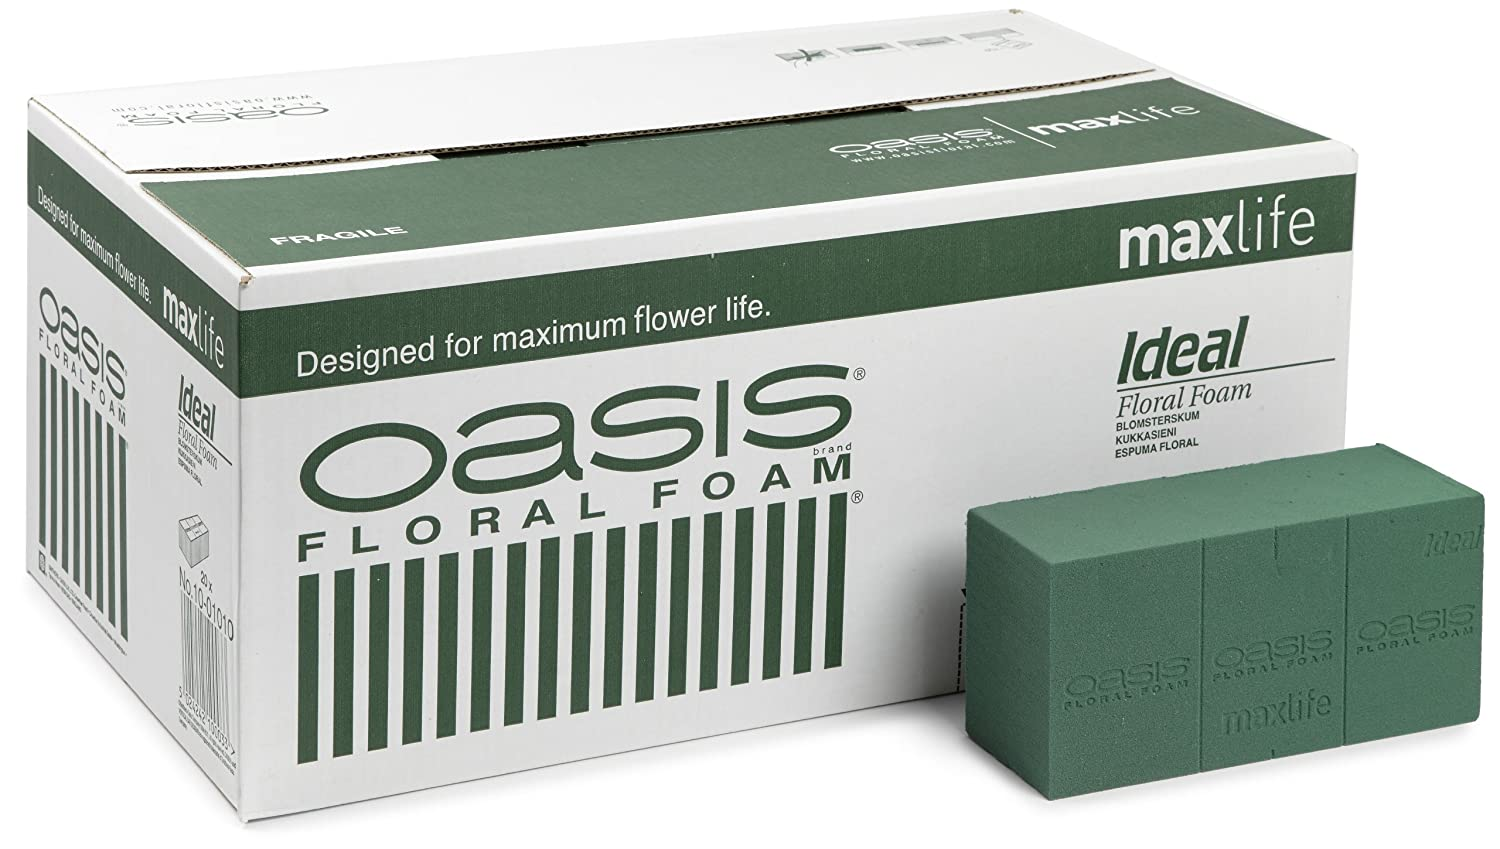 OASIS IDEAL WET FLORAL FLORISTRY FOAM MAXLIFE BRICK BLOCK-BOX OF 20 FLORIST FOAM